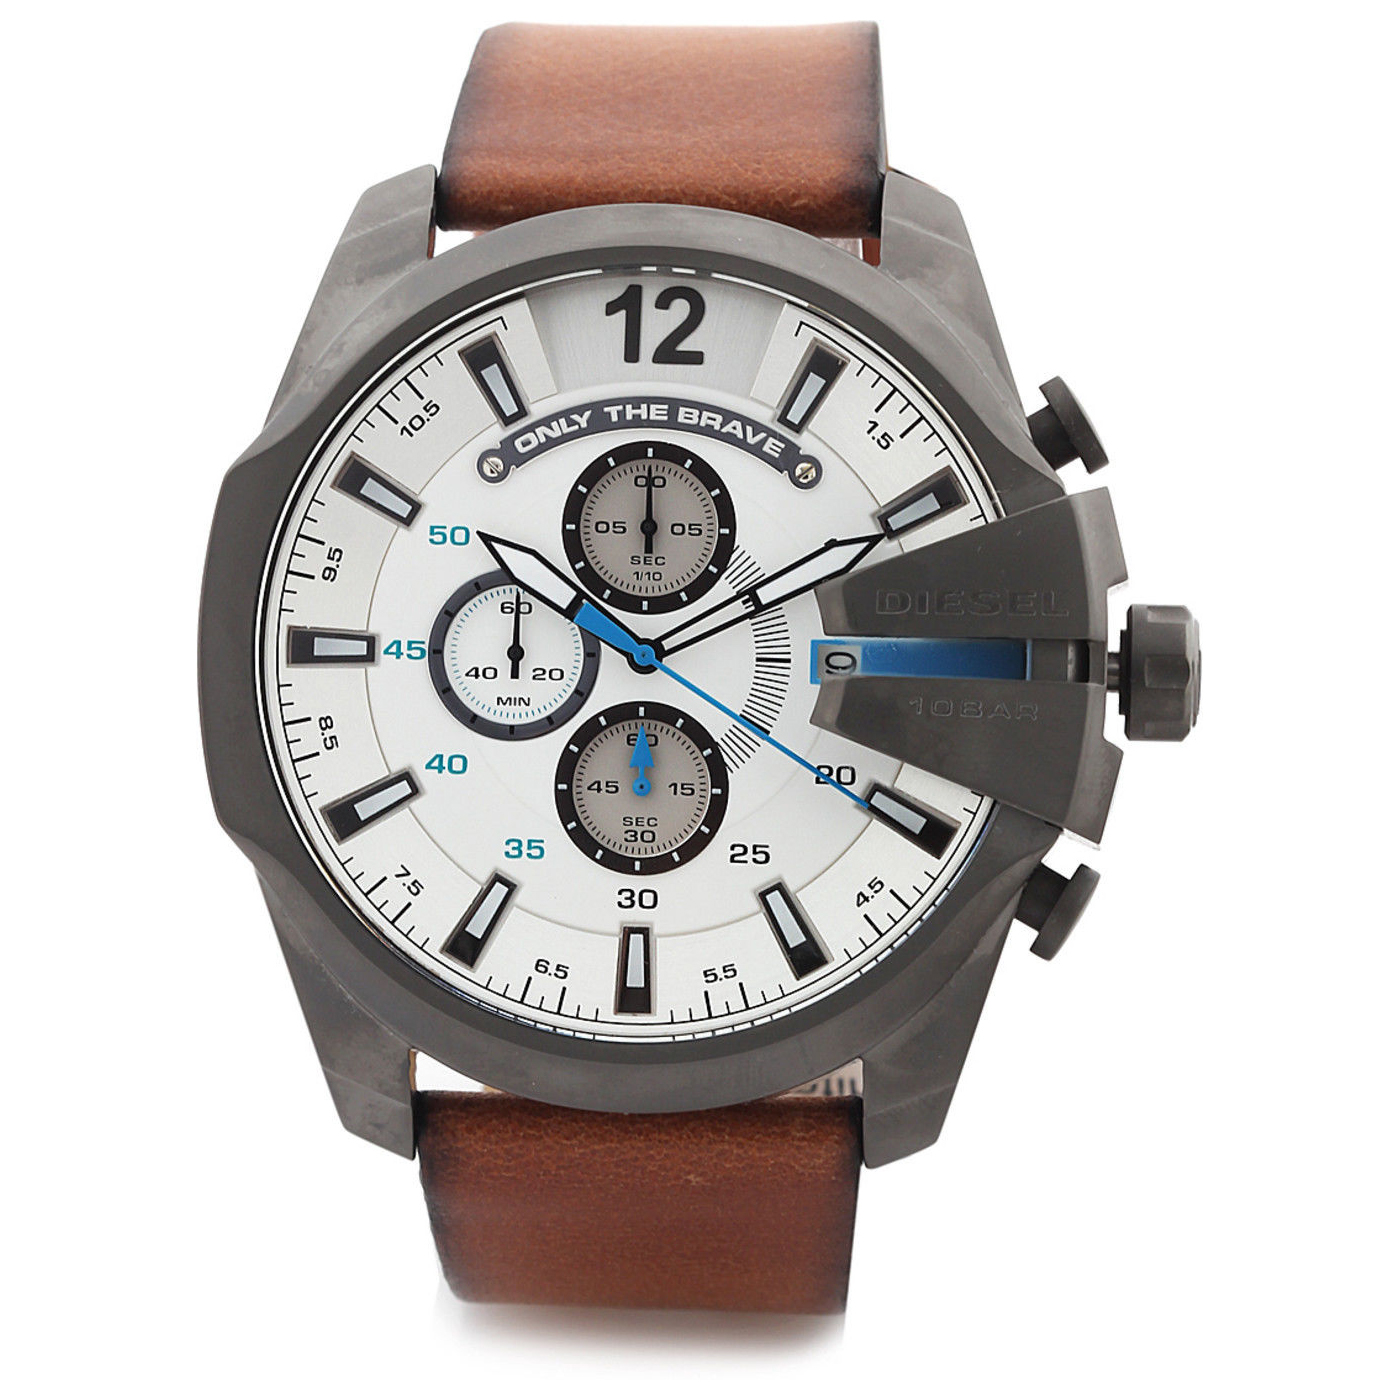 Diesel DZ4280 Chief Series Quartz Brown Strap Gun Metal Casing Analog Mens Watch